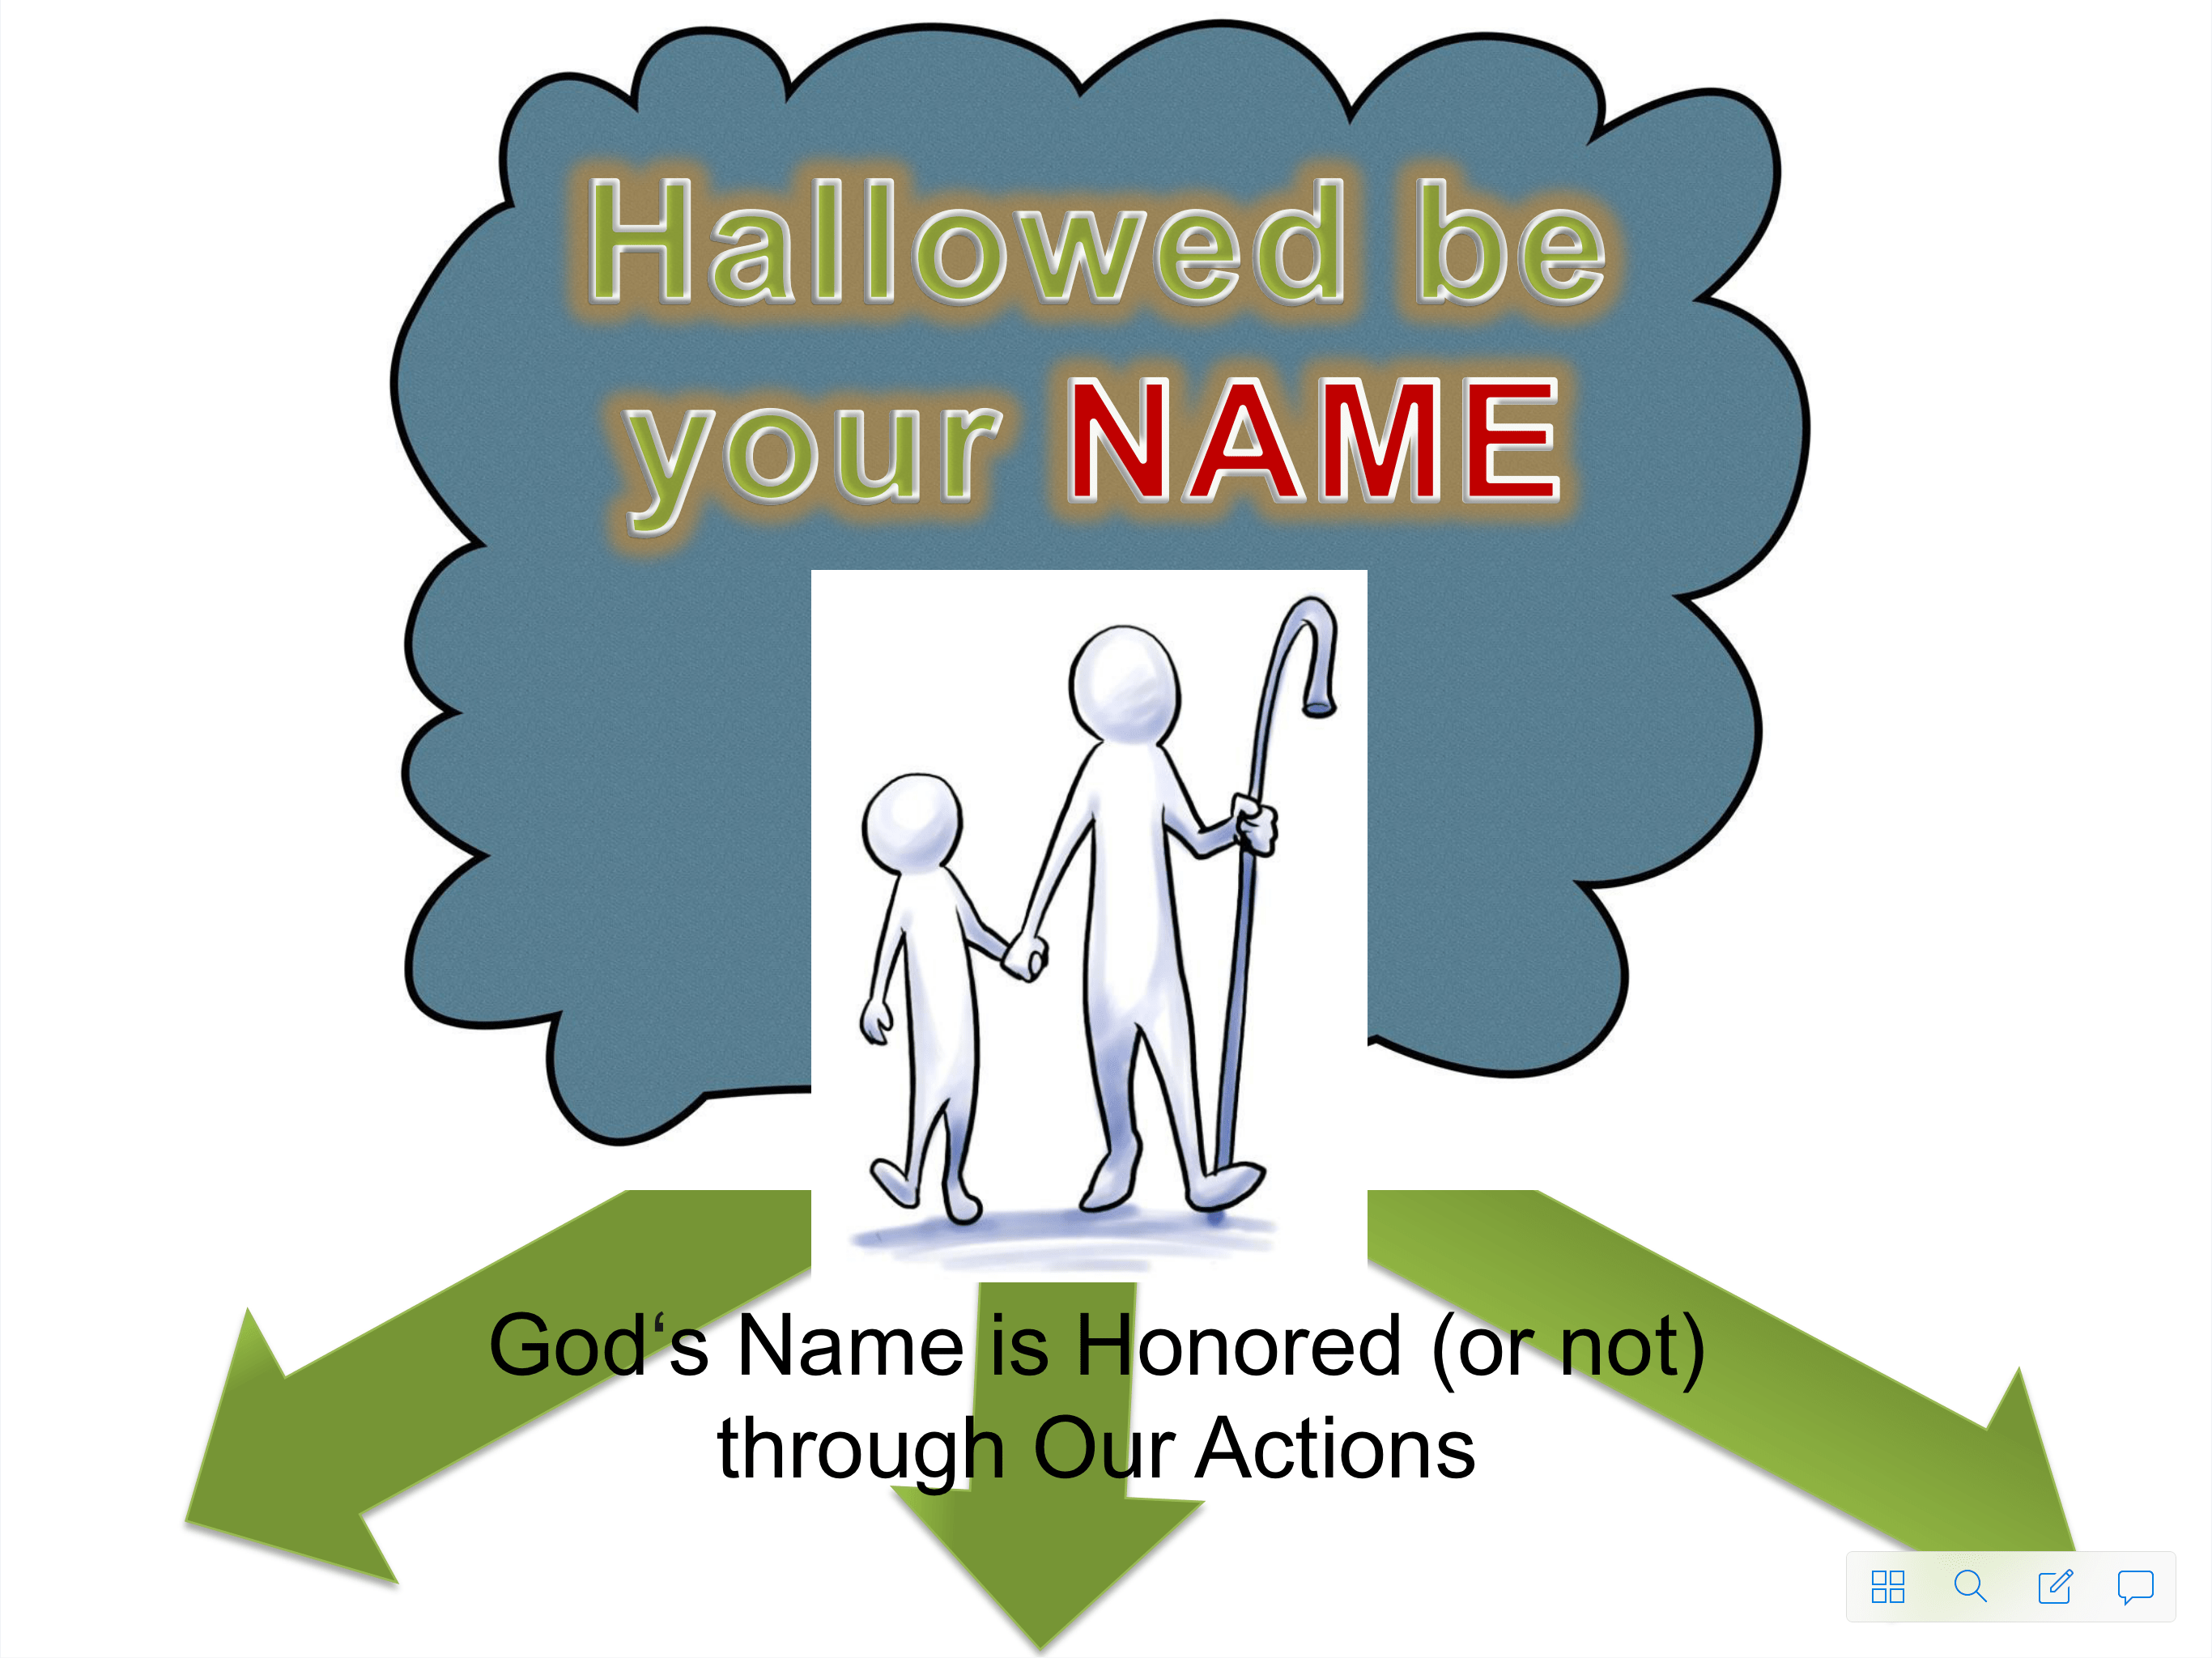 Hallowed be your name